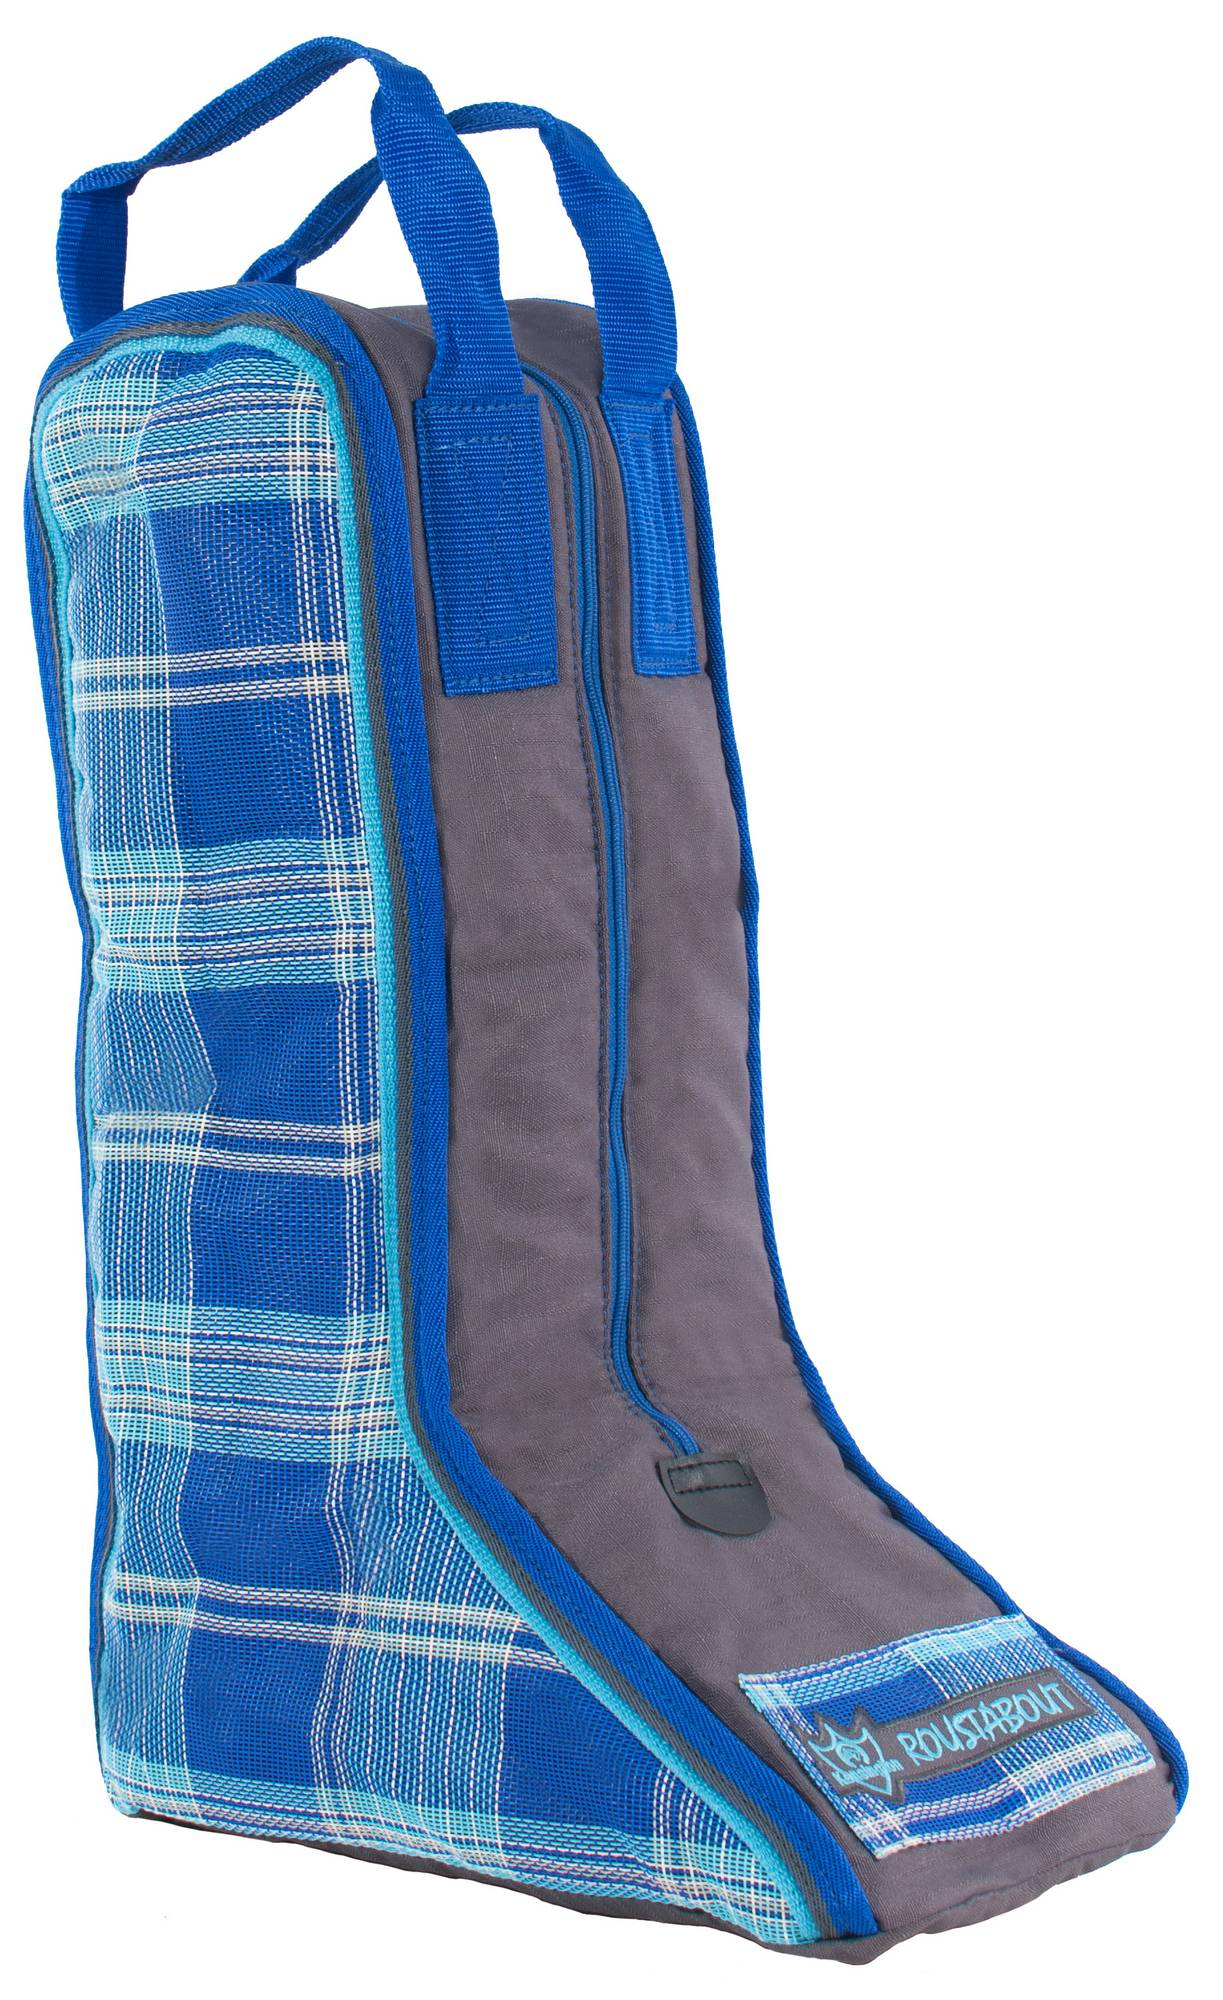 Outlet - Kensington Roustabout Boot Bag, 22'' Tall, Blue Ice Plaid